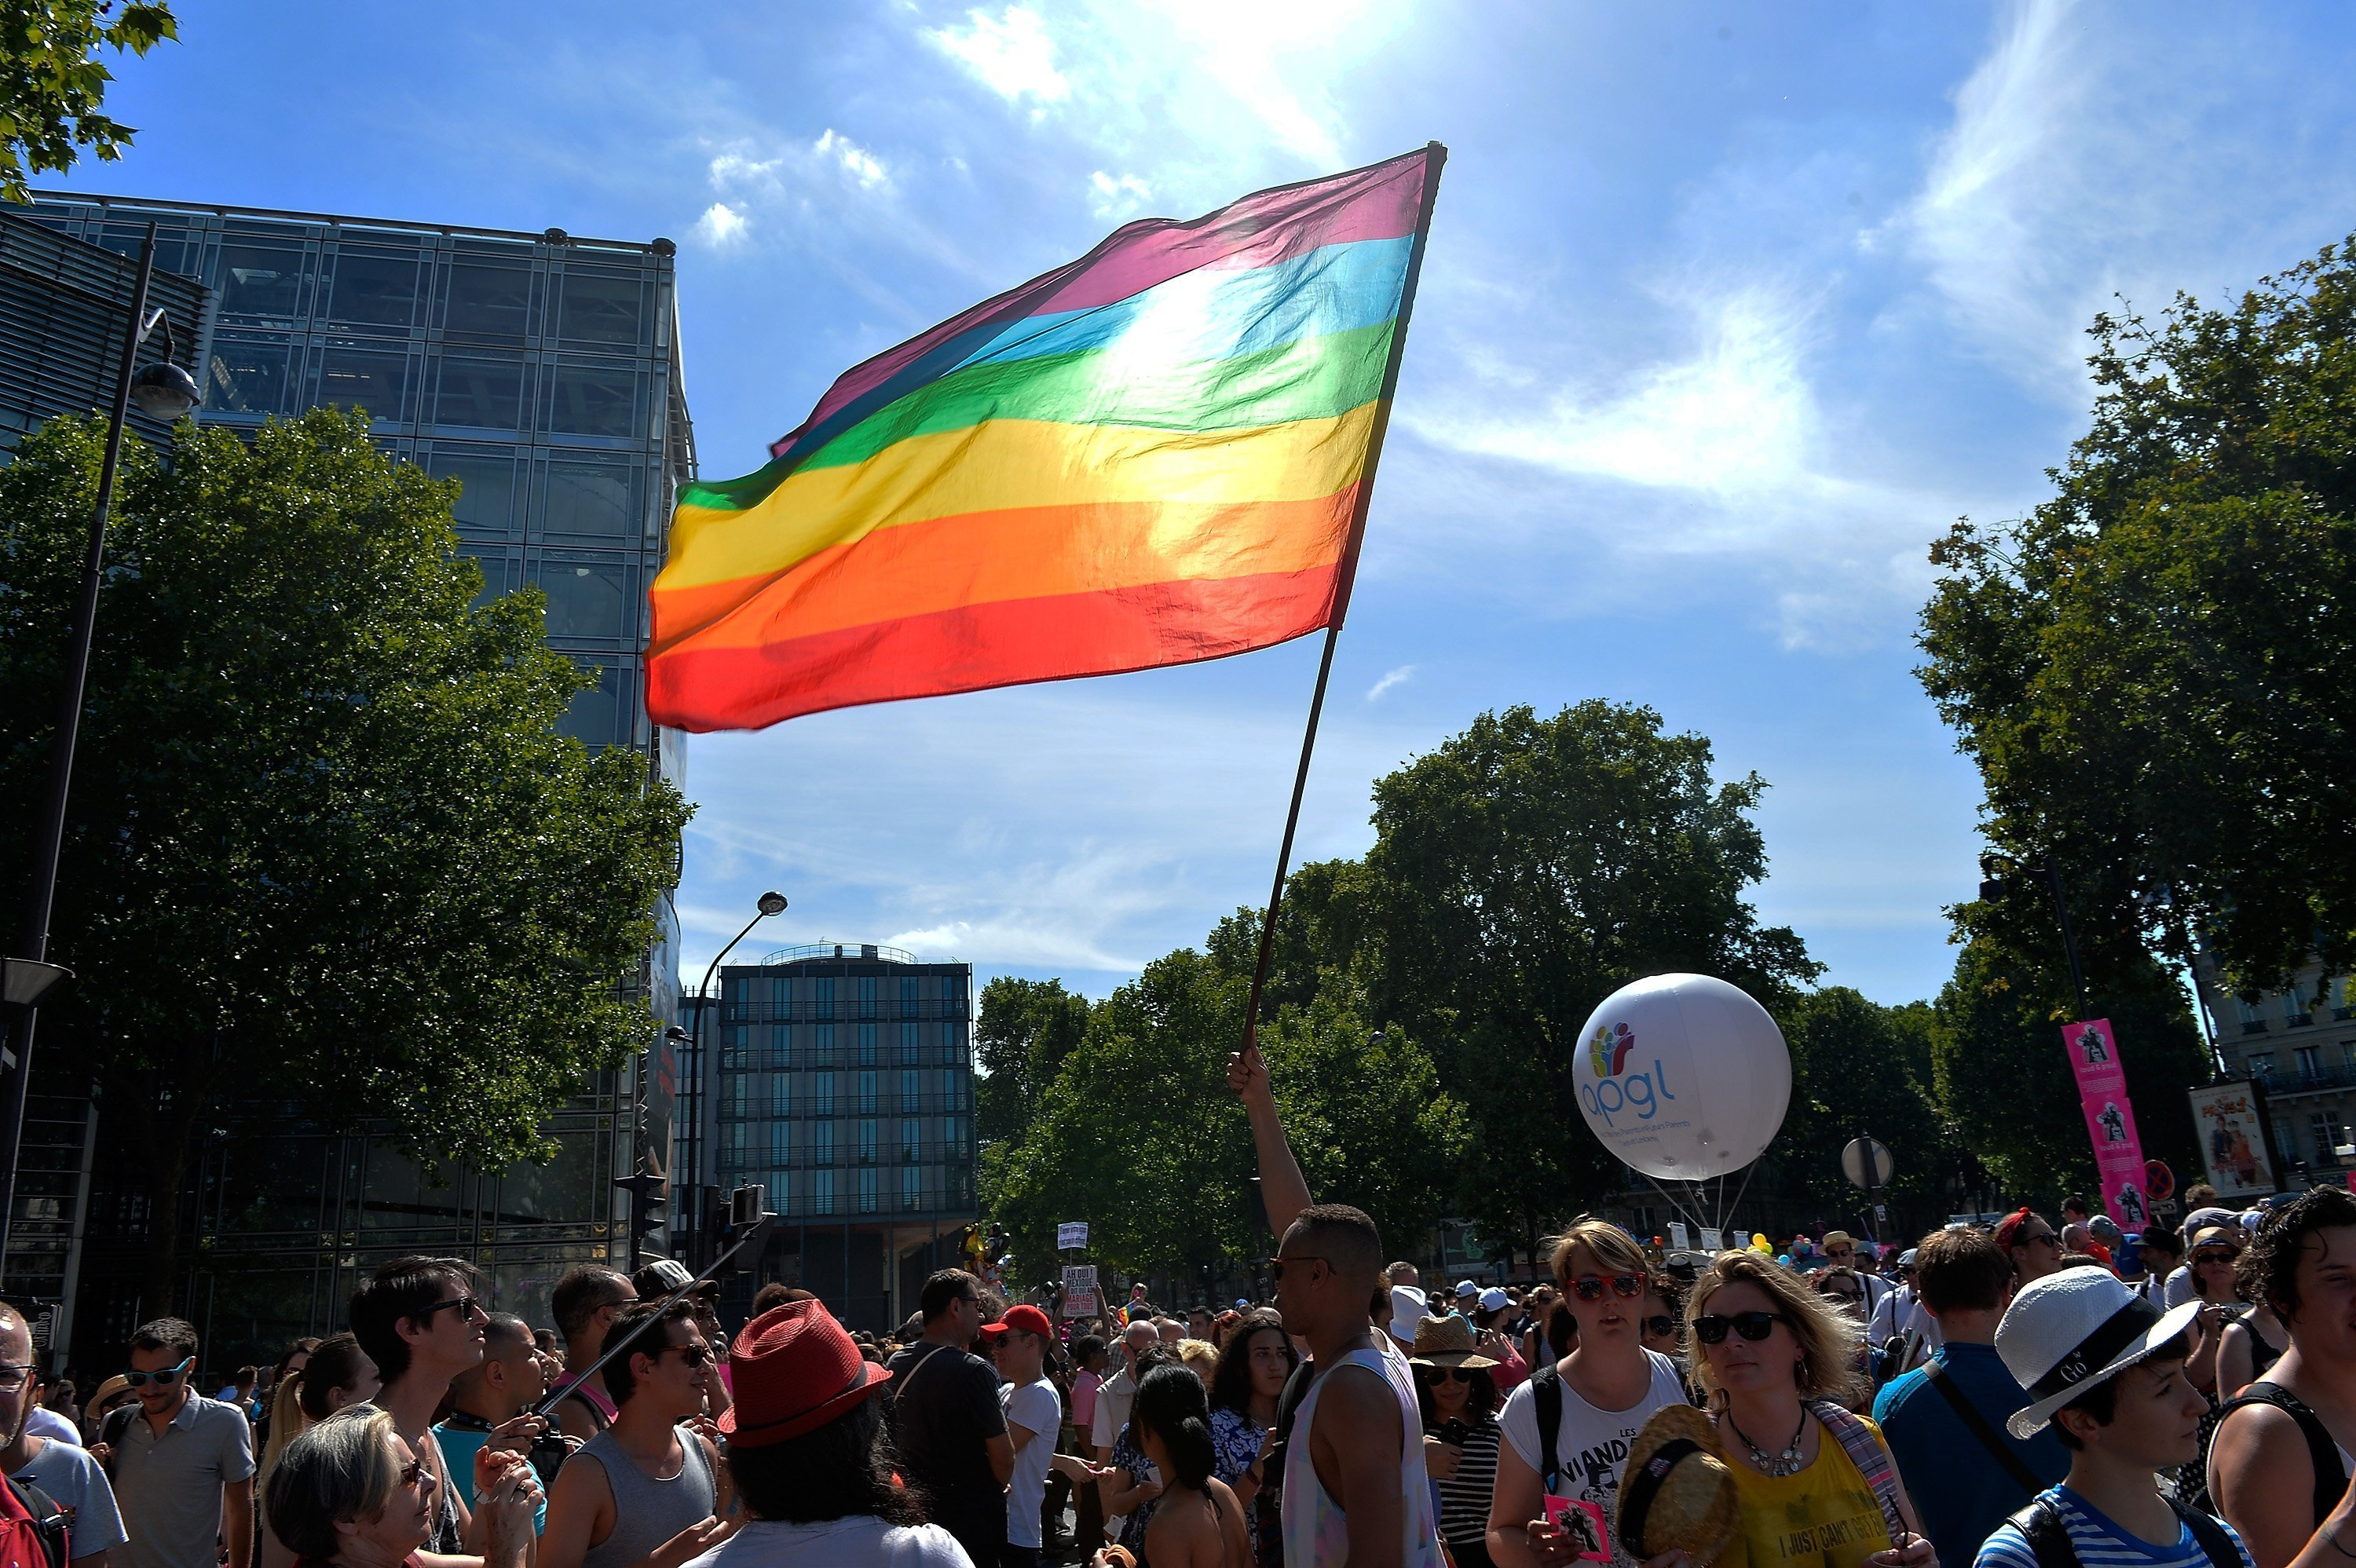 A rainbow flag being waved at the Gay Pride Parade in Paris | Photo: Getty Images